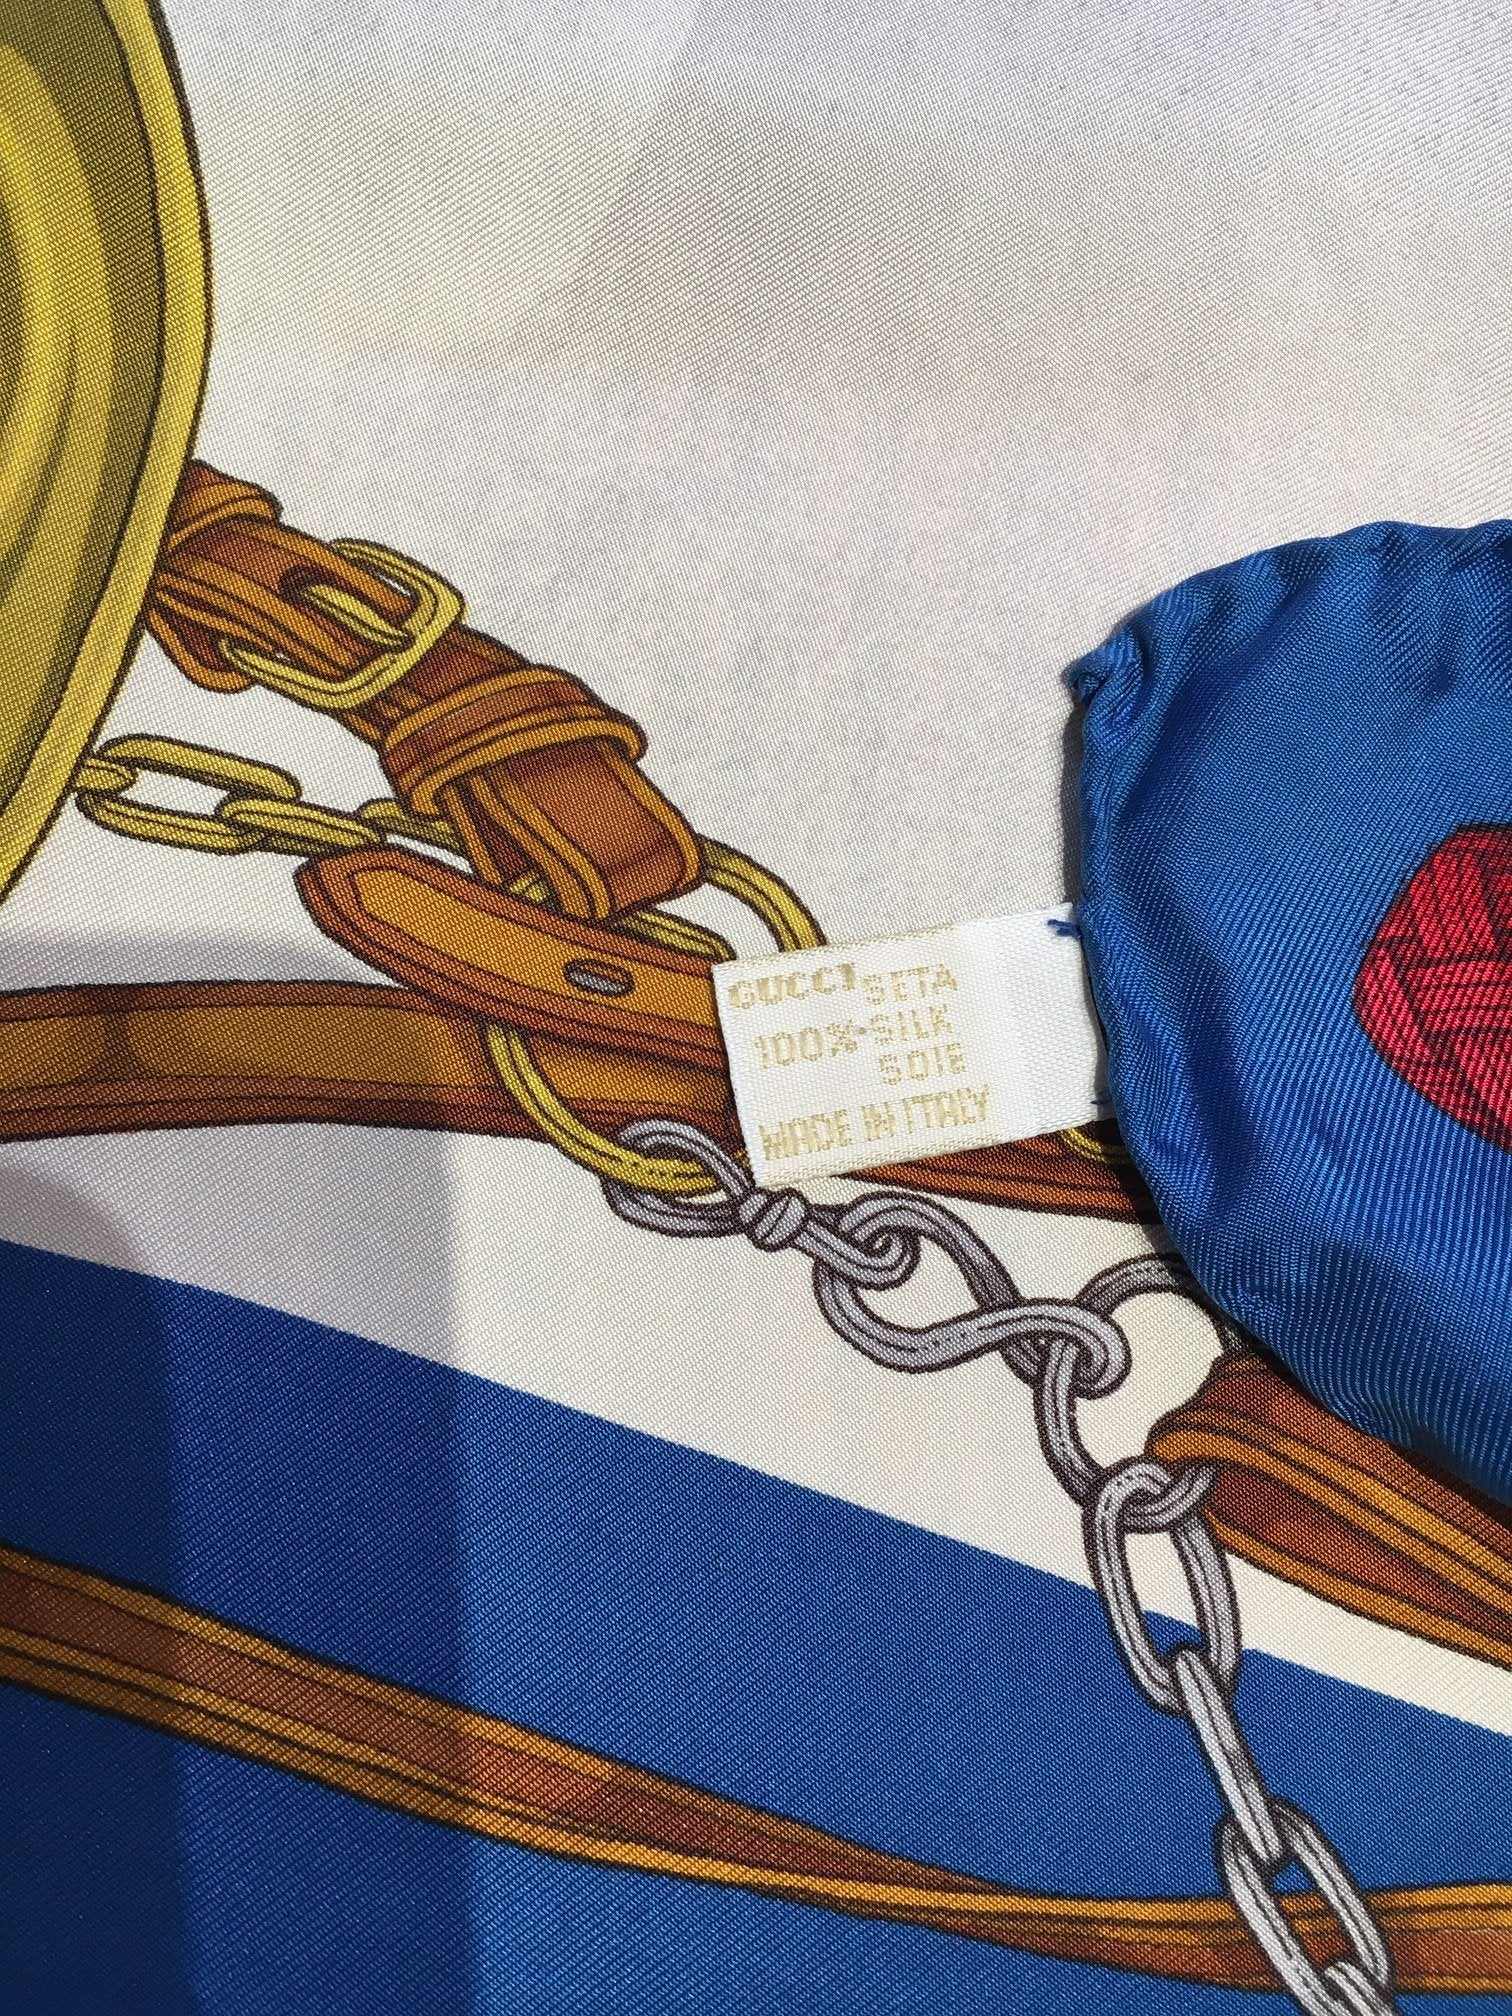 Vintage Gucci Silk Scarf, SALE, SOLD